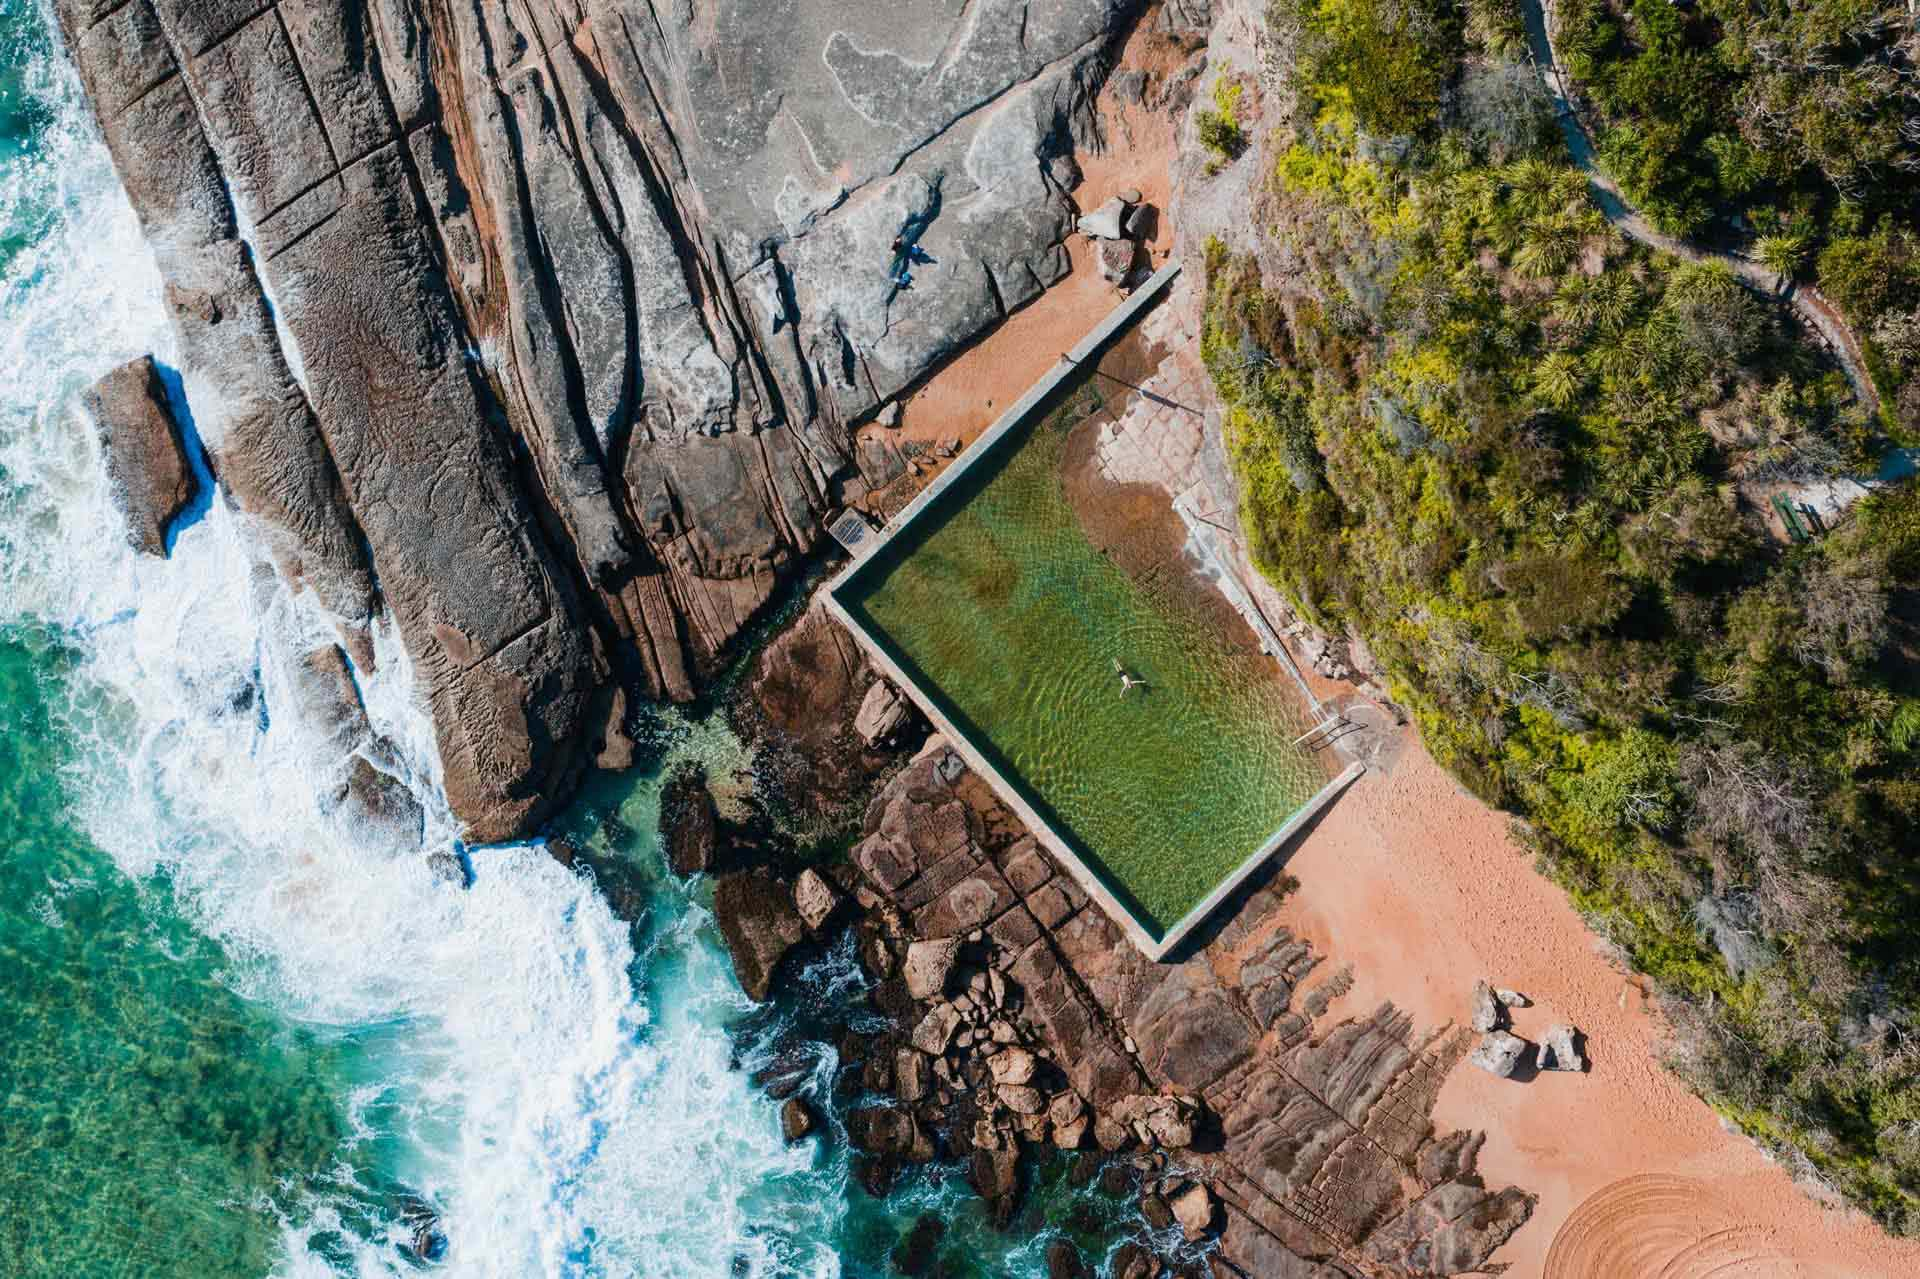 Here's All The Ocean Pools In Sydney's Northern Beaches, Jonathan Tan, Whale Beach Rock Pool, overhead shot, pool, ocean, rocks, waves, beach, sand